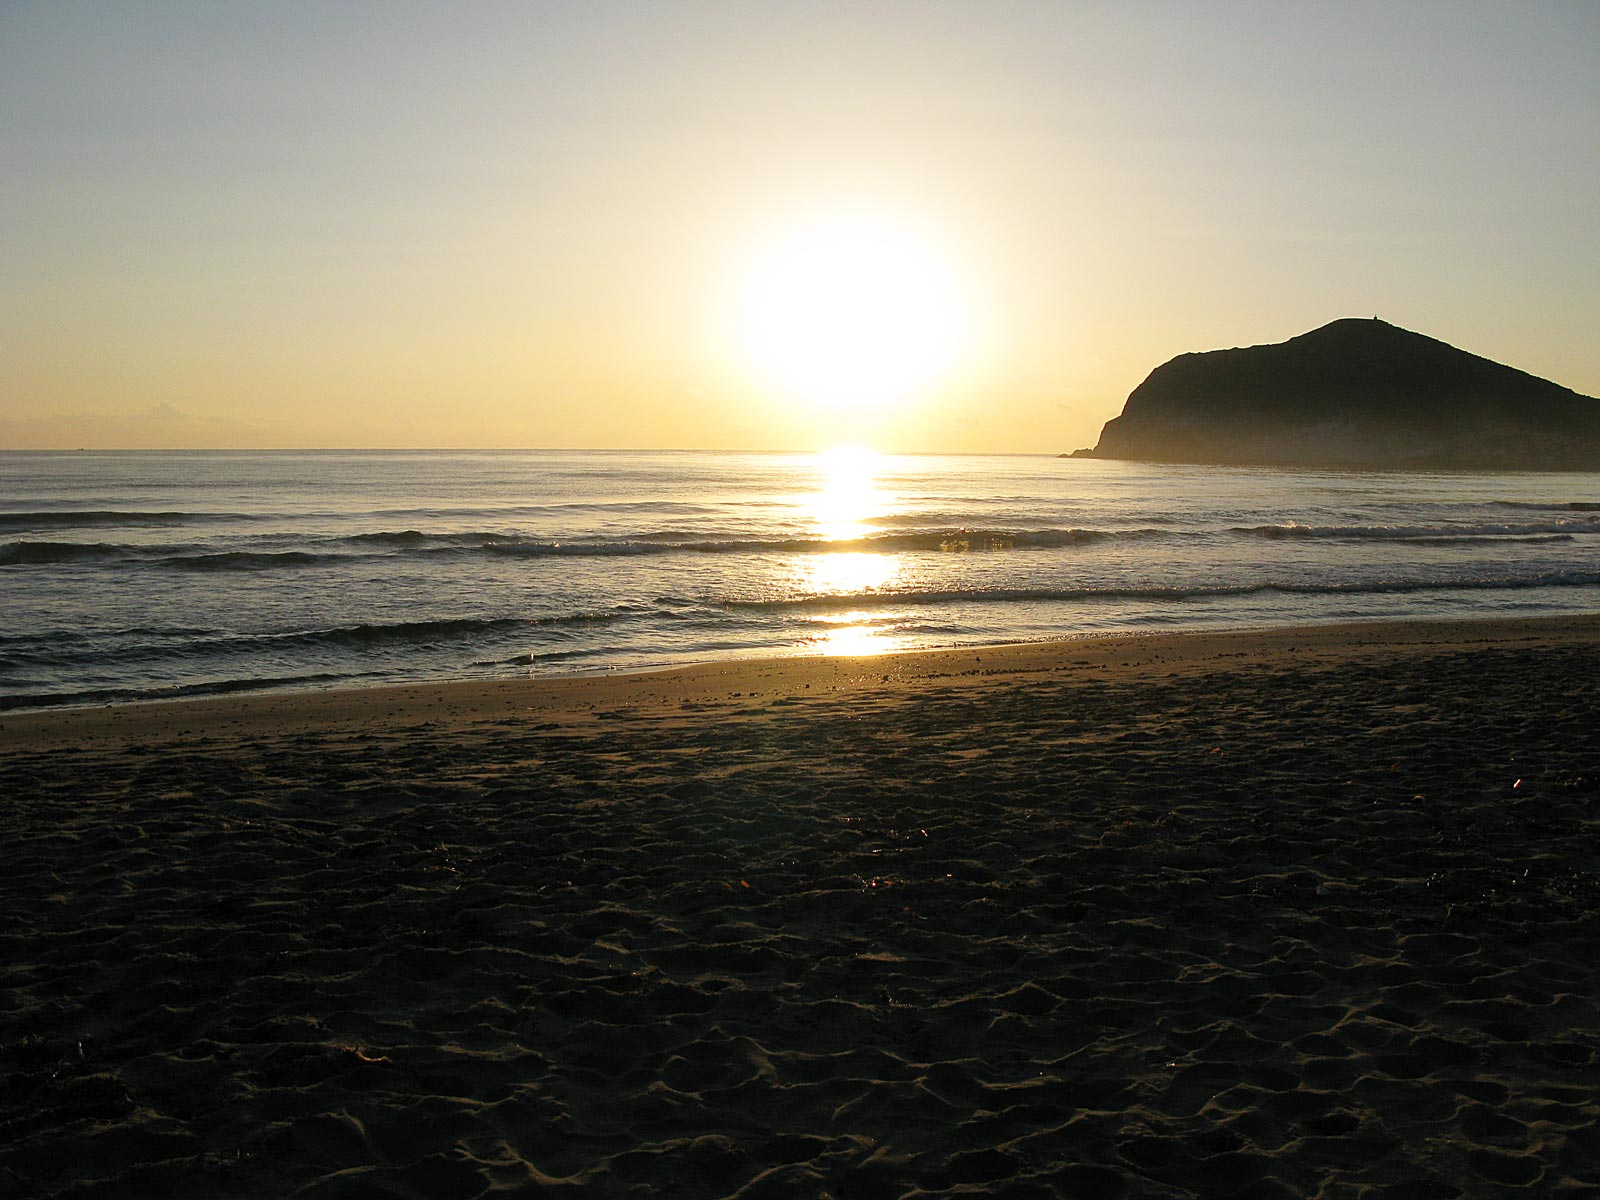 Sunset at Playa de Los Genoveses